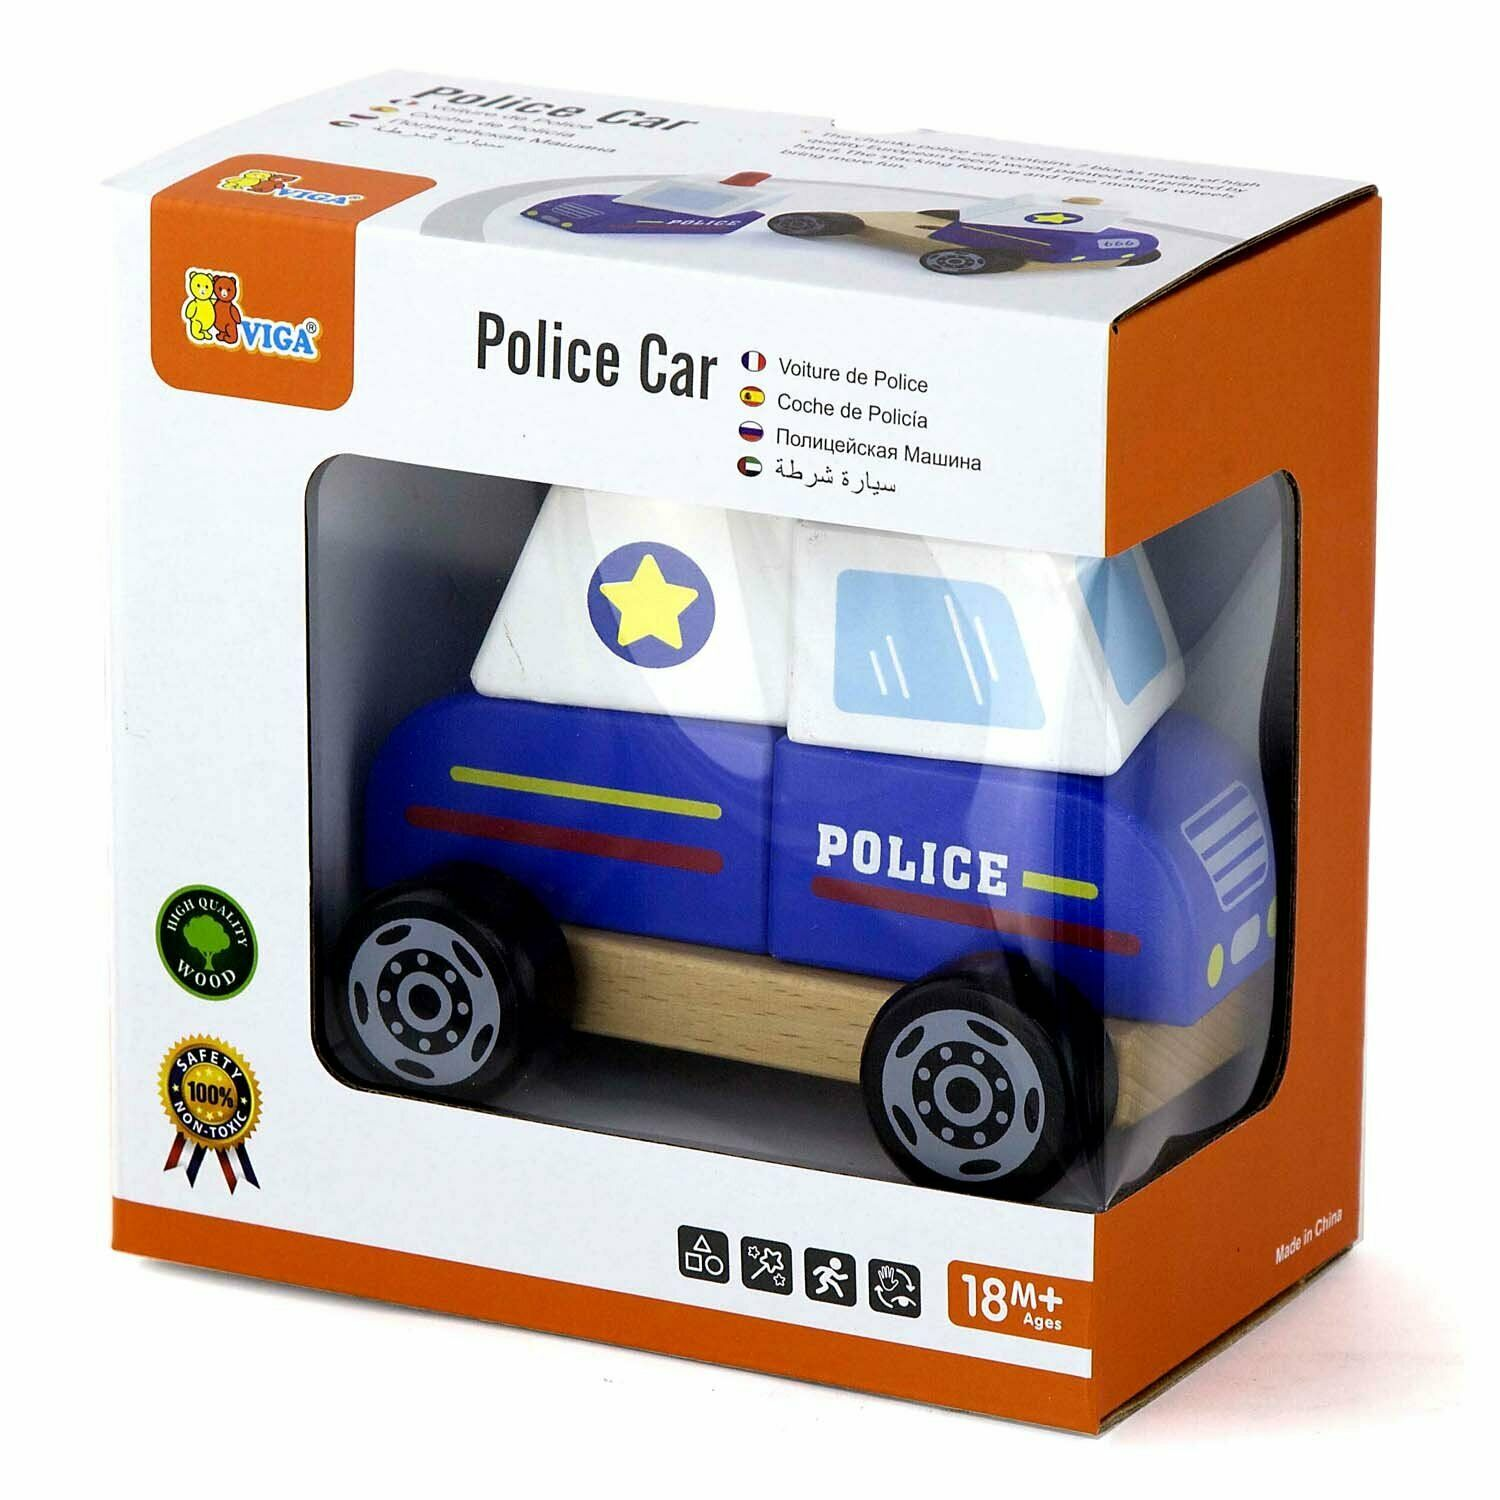 Wooden Stacking Car - POLICE CAR by VIGA Toys